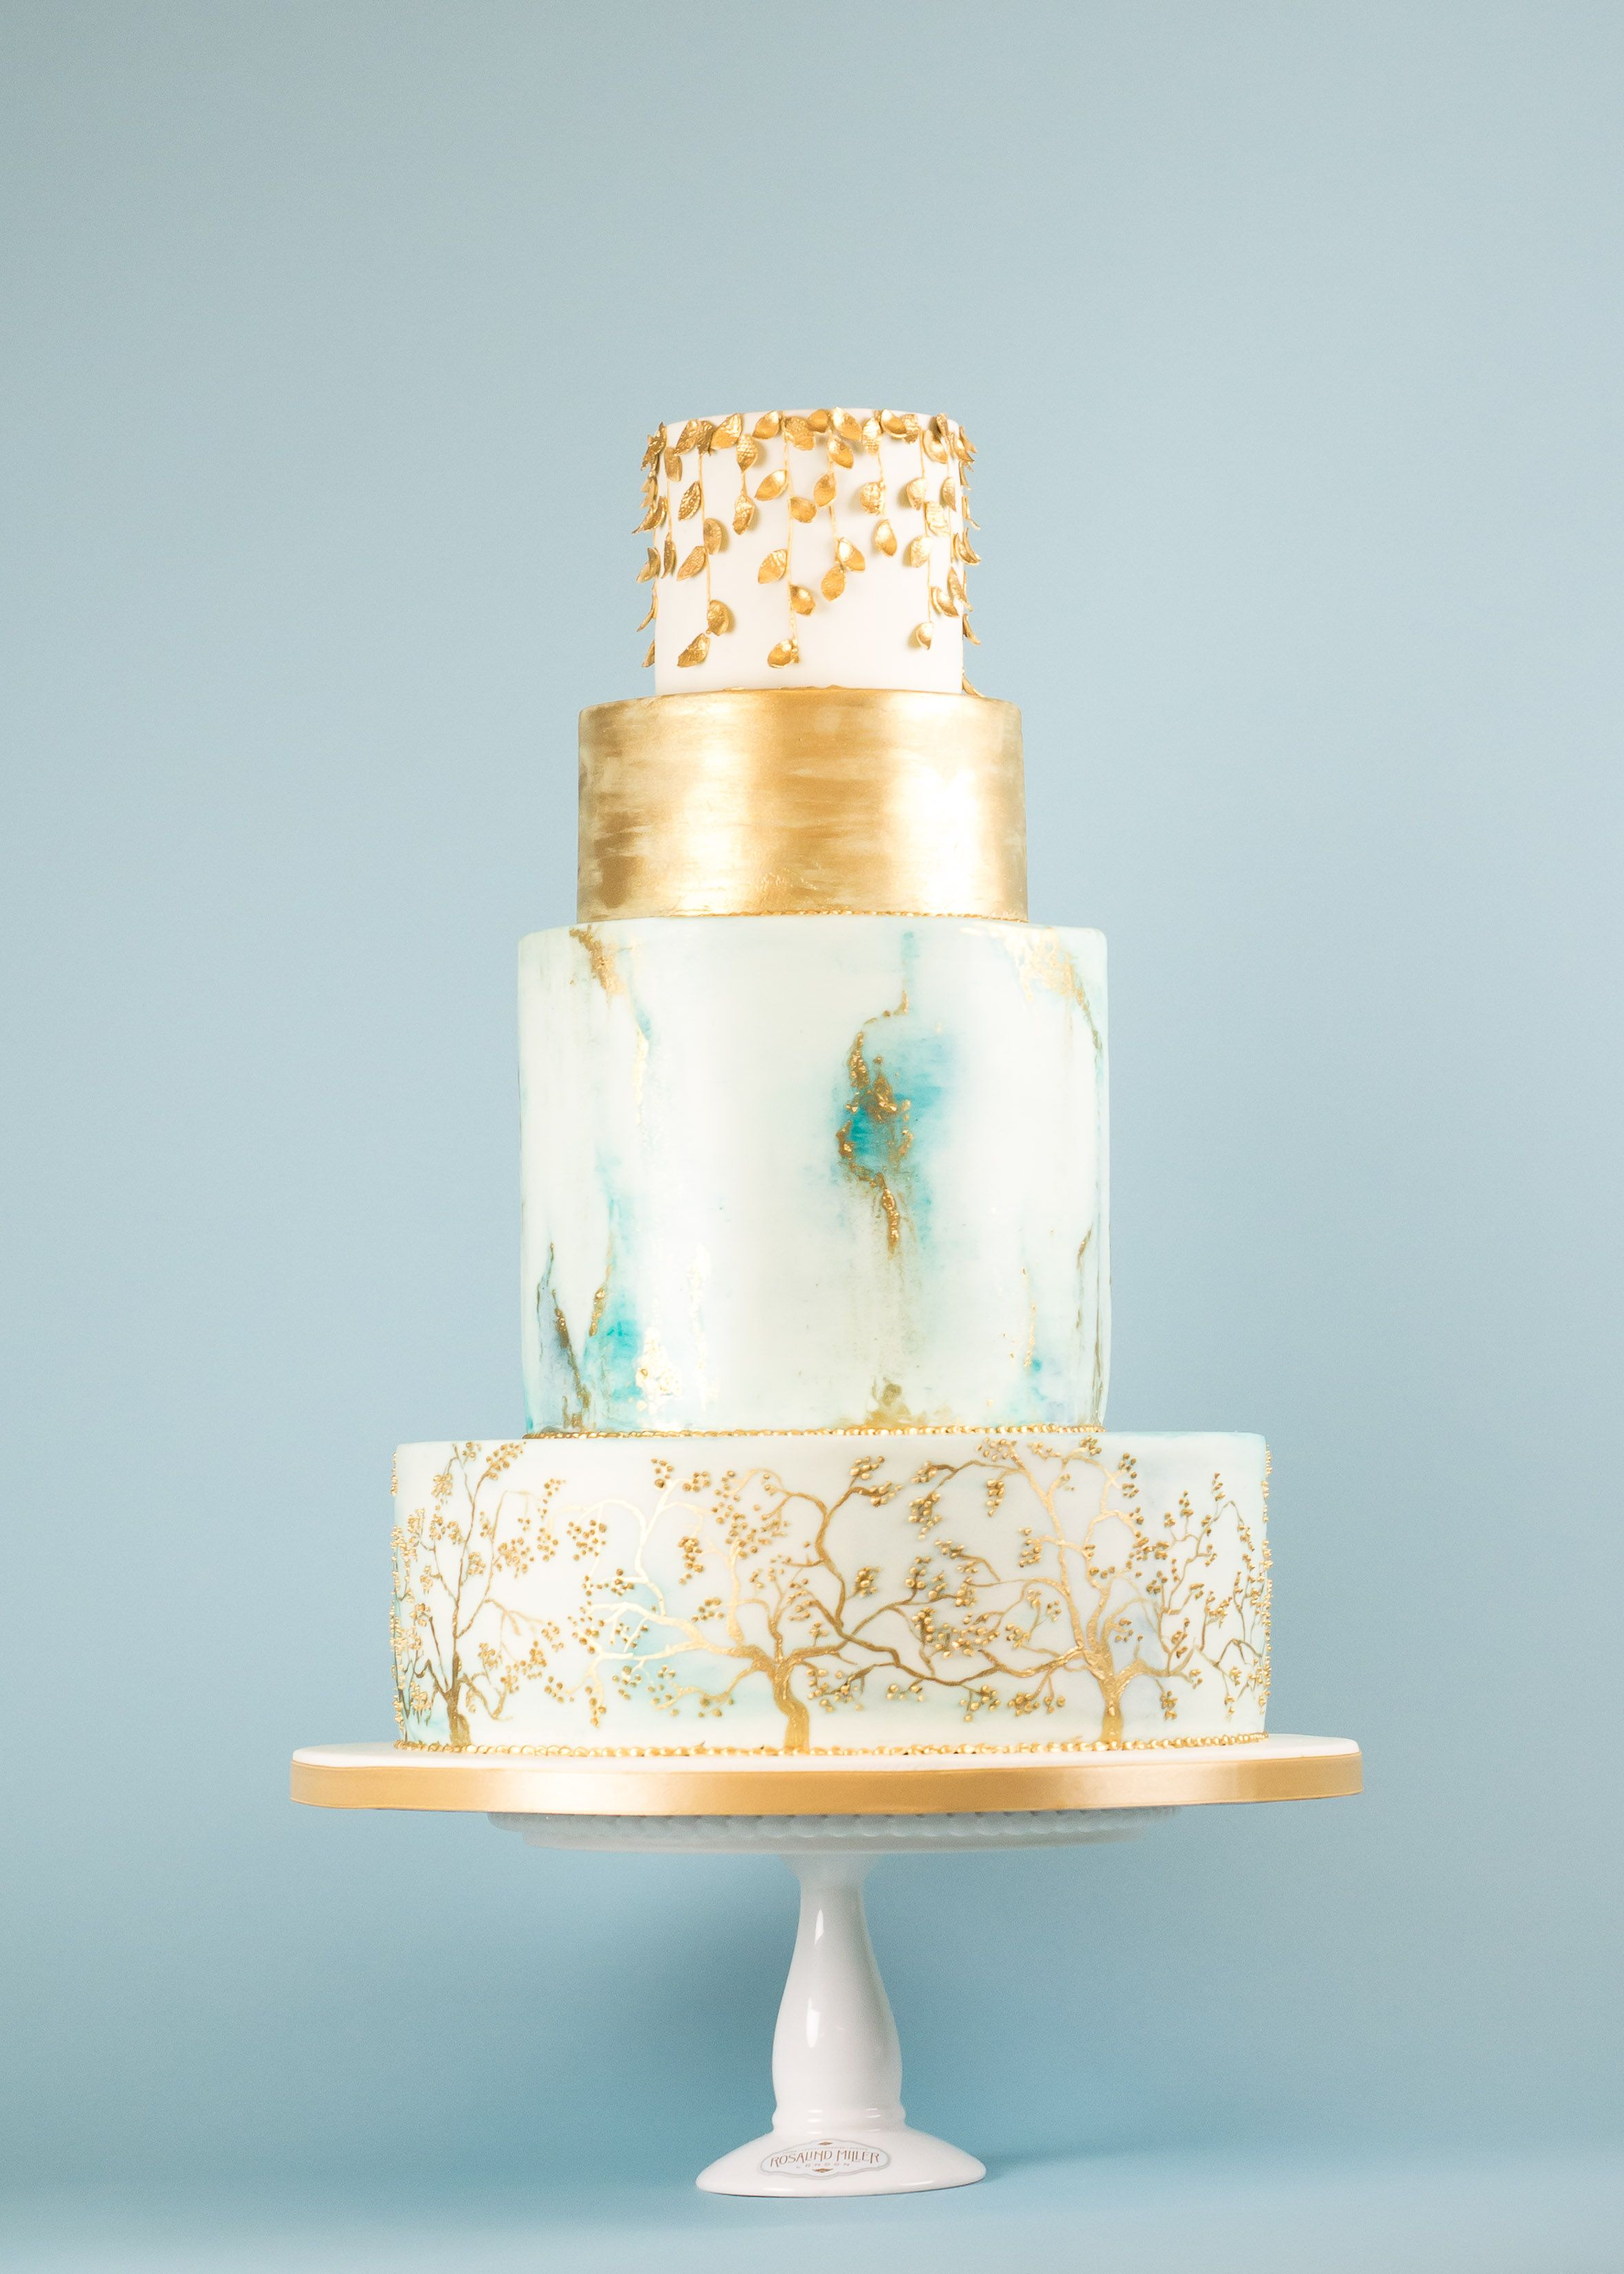 Getting married in 2017 Here are 17 wedding cake trends you need